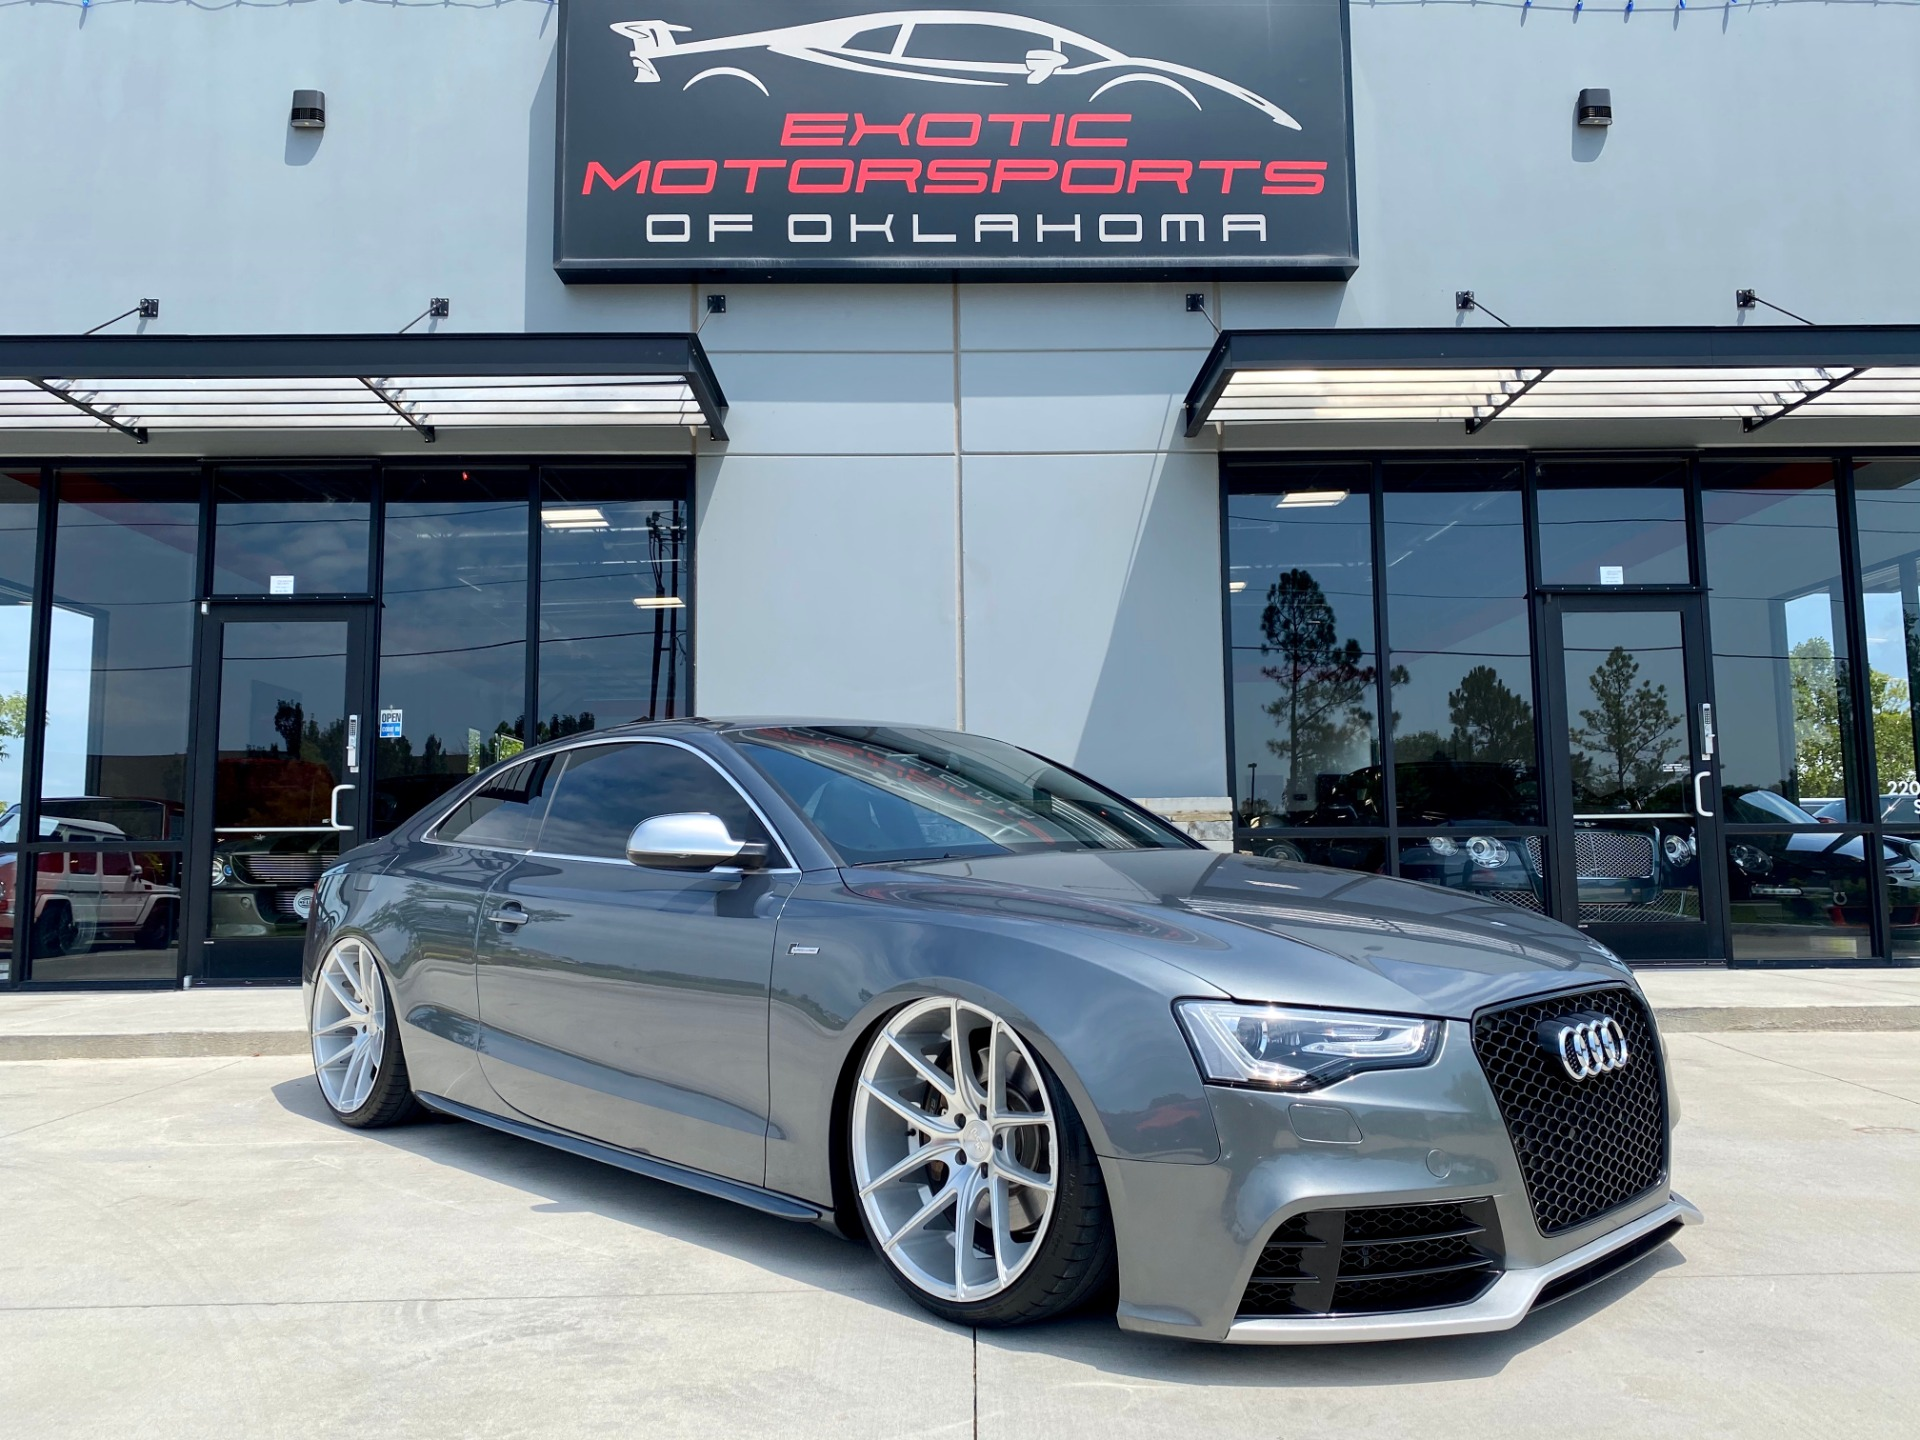 Used 2013 Audi S5 For Sale Sold Exotic Motorsports Of Oklahoma Stock C395